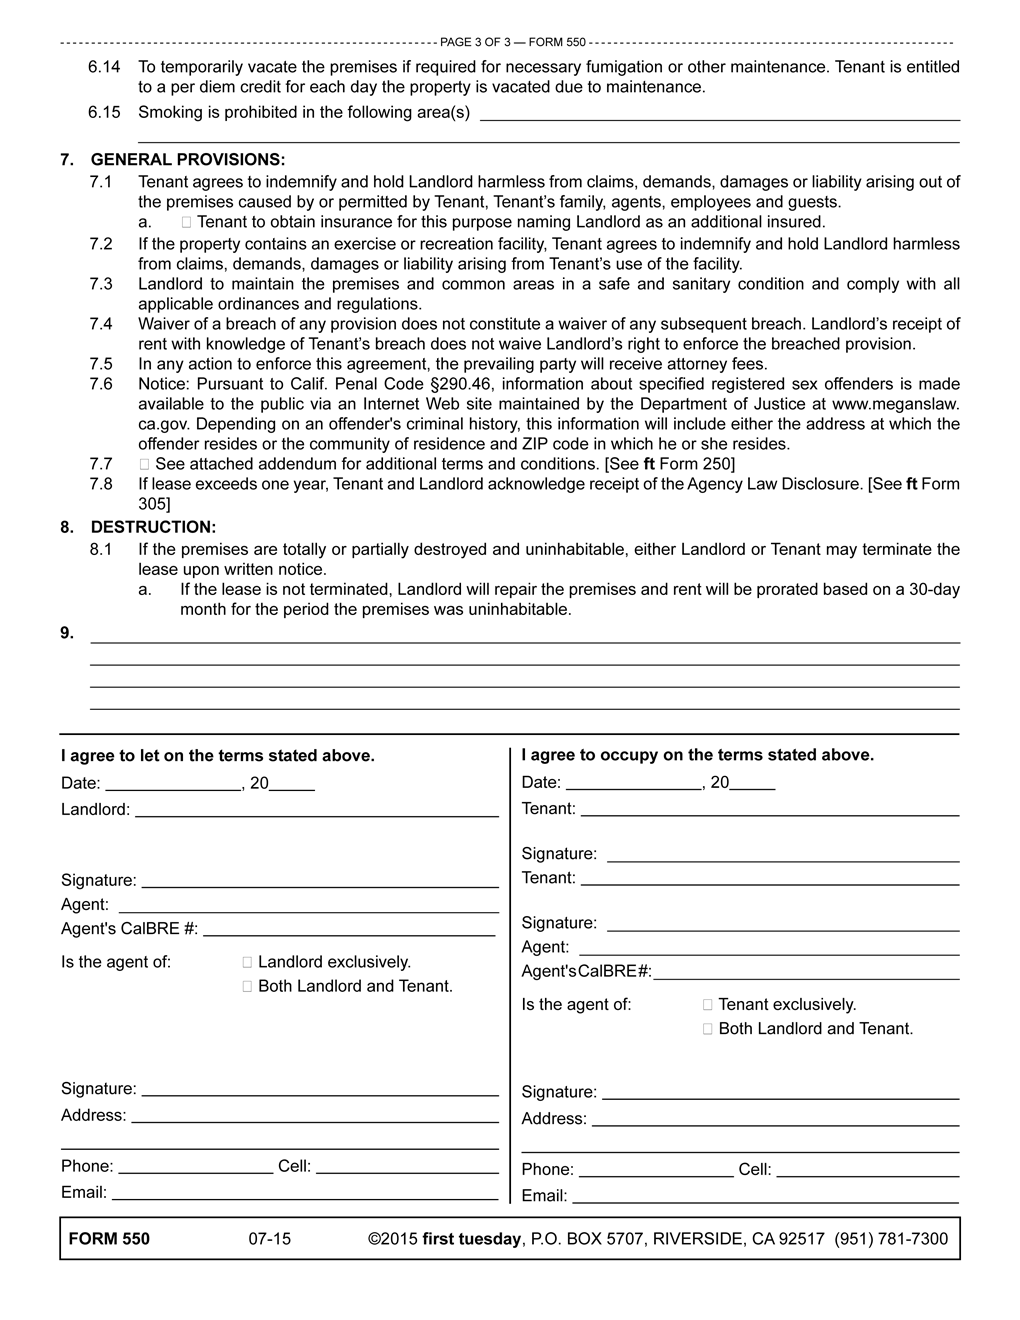 The Residential Lease Agreement Setting The Terms Of A Fixed Term